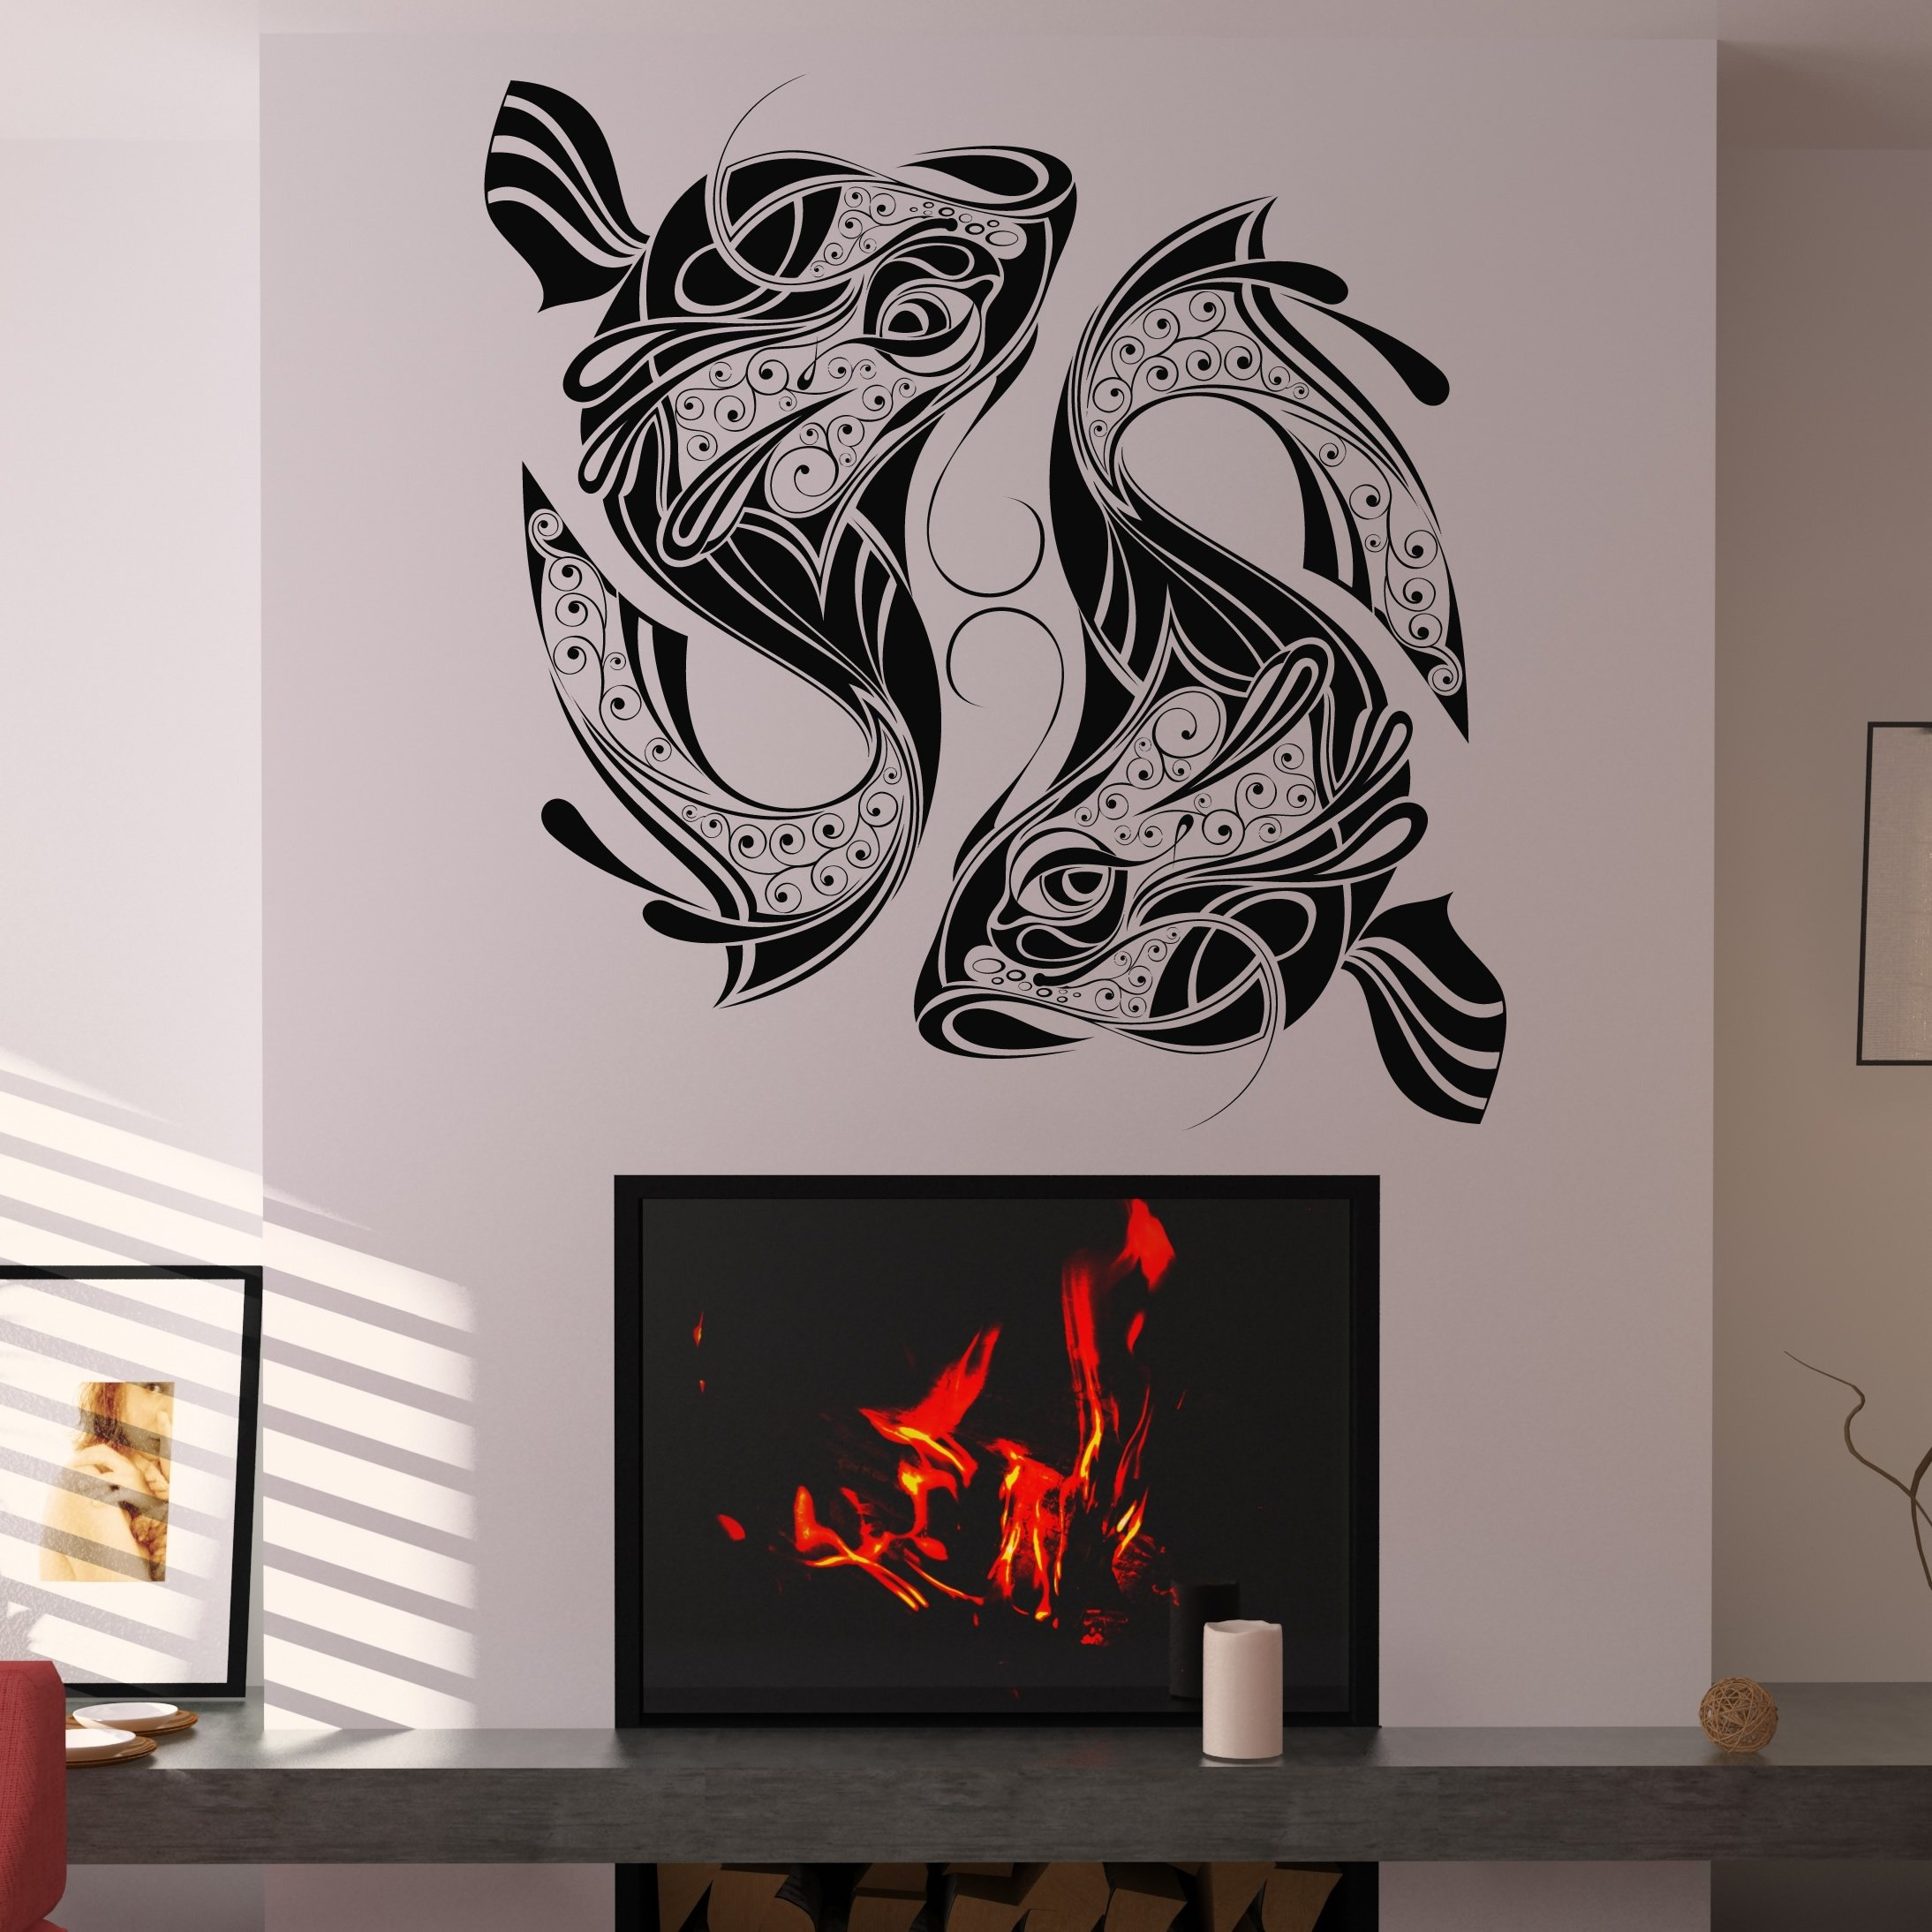 Sticker Decor 17 Architectural Wall Graphics Images Arch Architectural